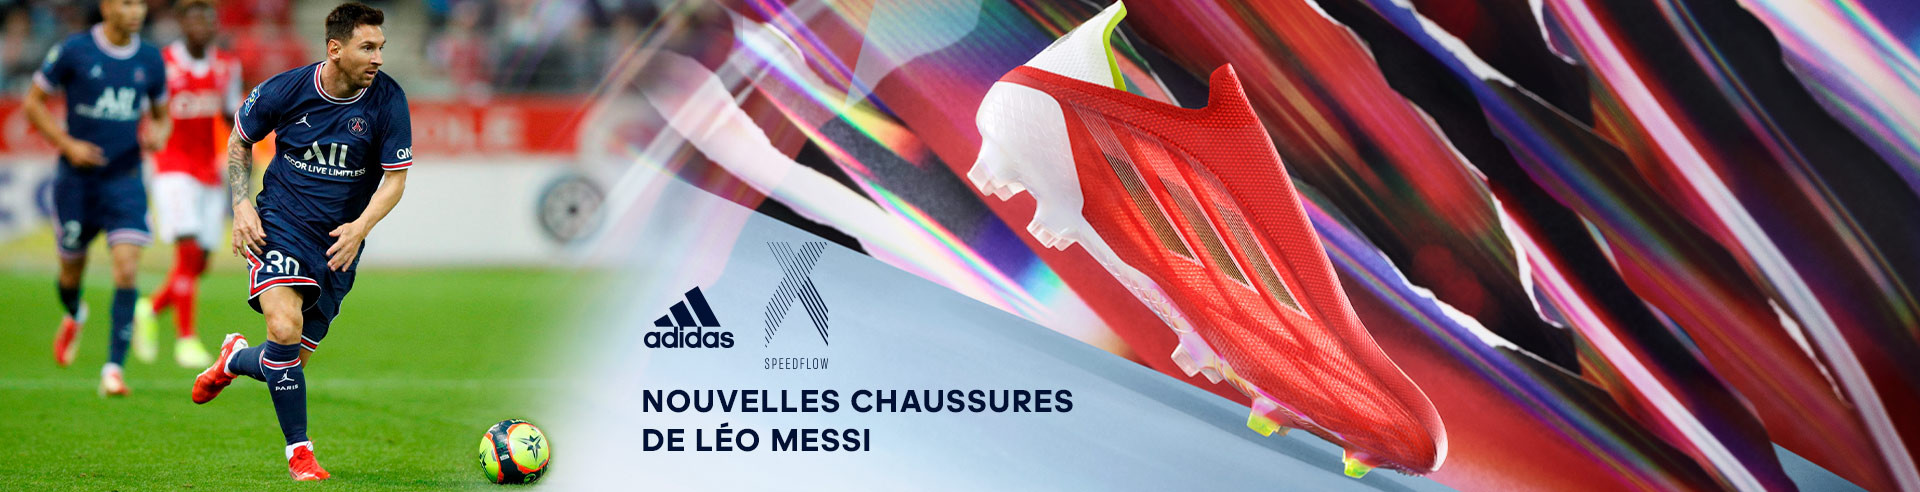 ADIDAS MESSI NEW BOOTS FR SEPTIEMBRE 2021